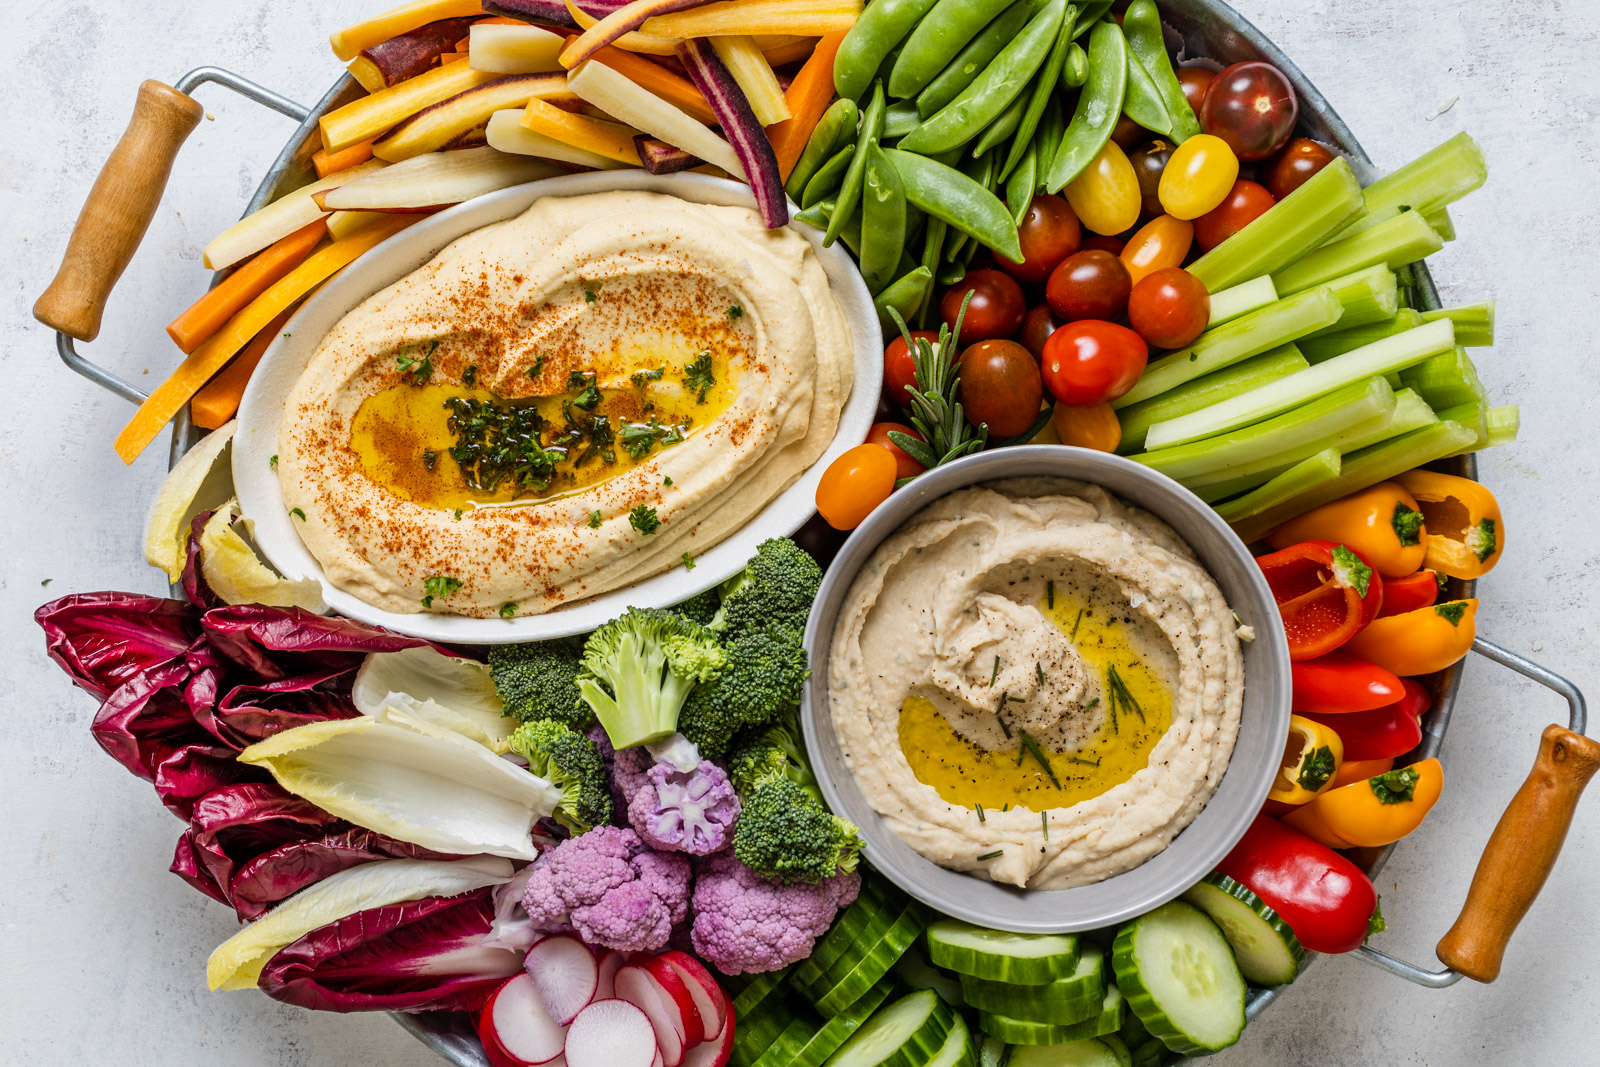 Creamy Hummus and White Bean Dip With Roasted Garlic and Rosemary